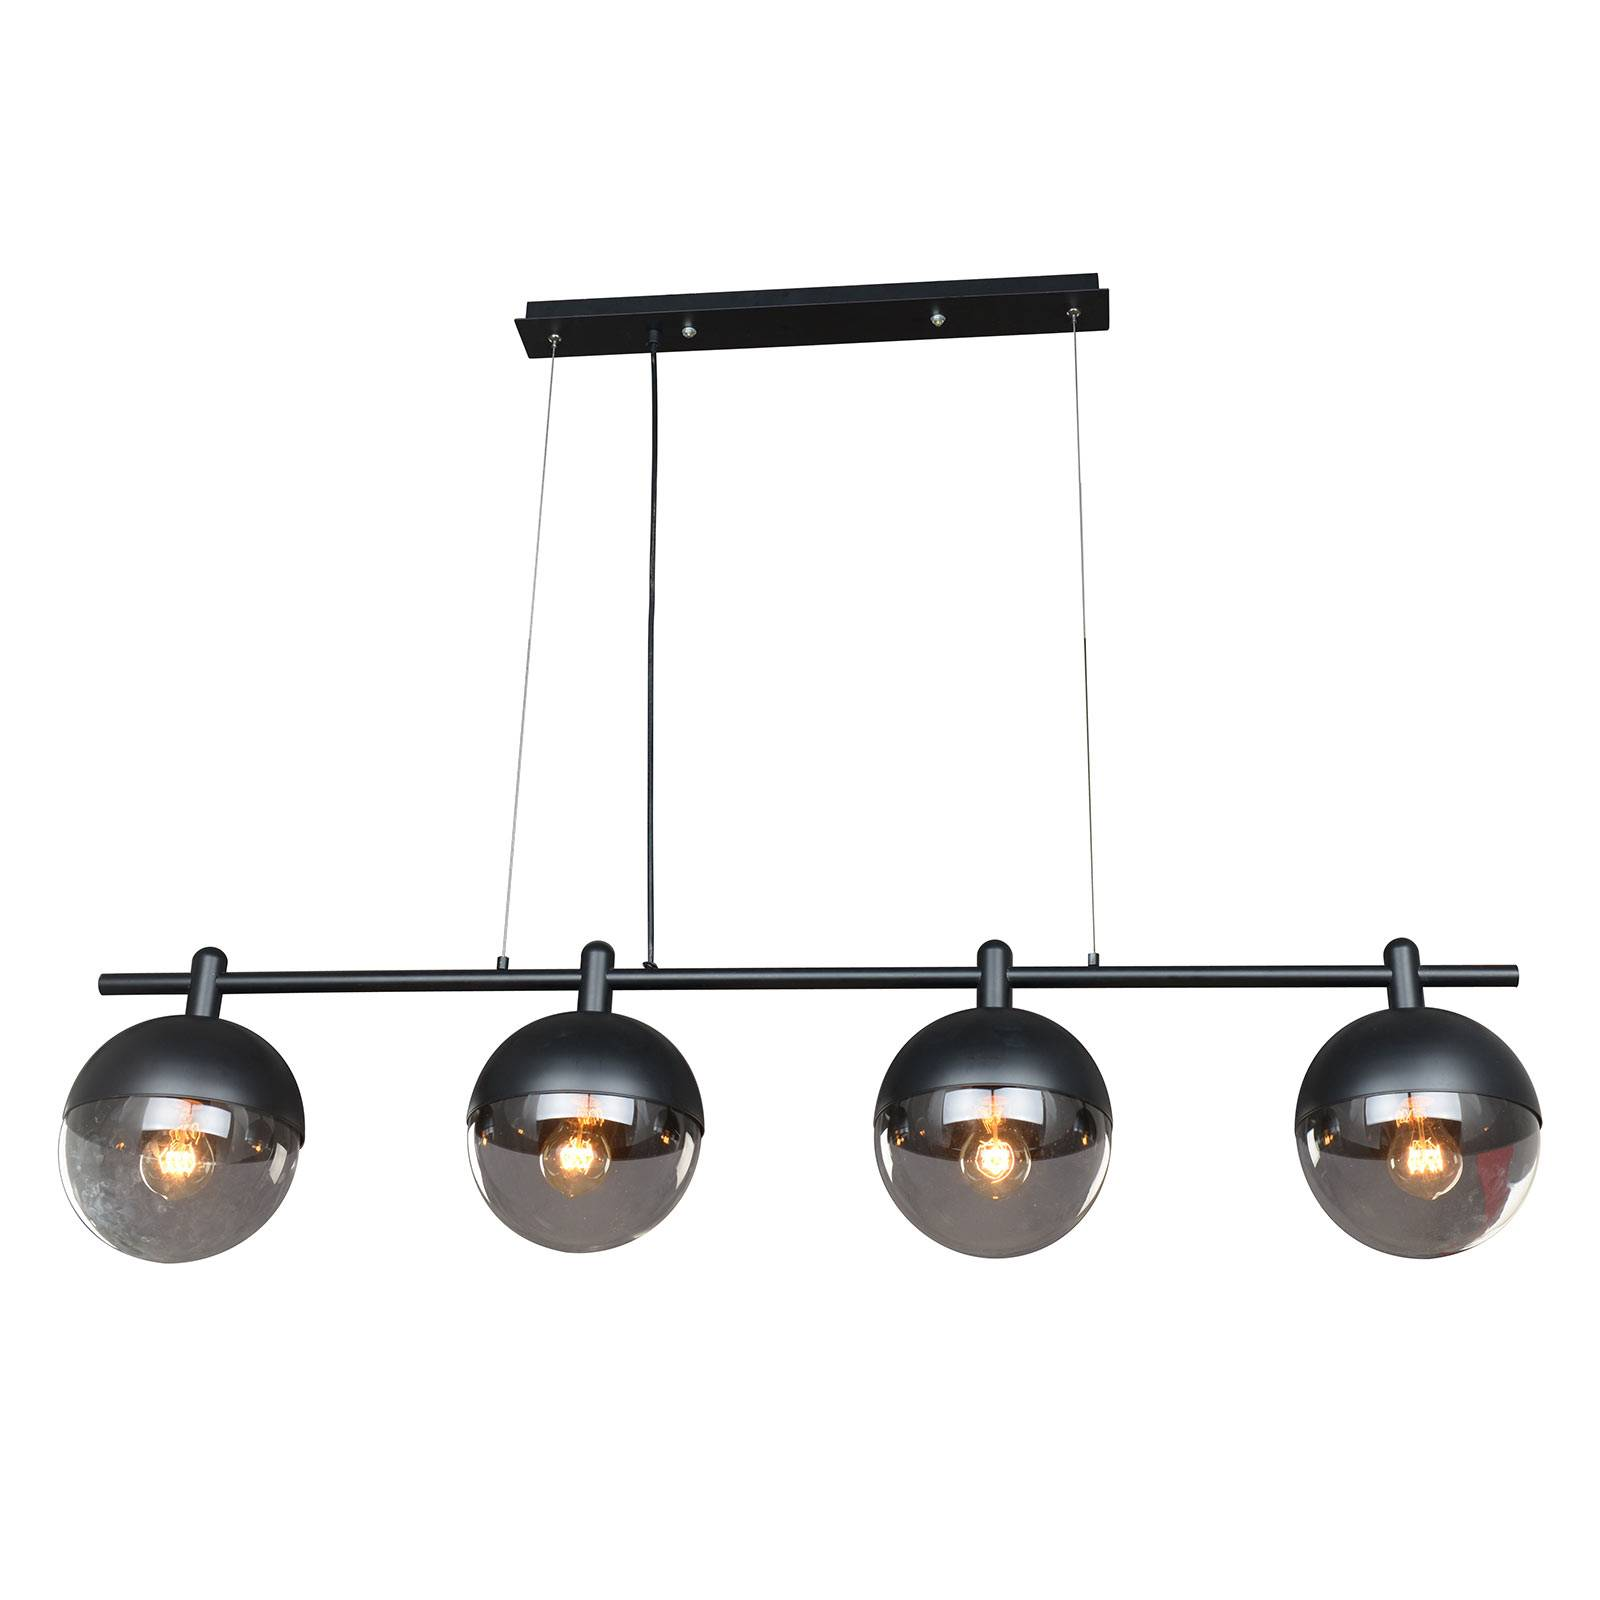 Lucande Dustian suspension à 4 lampes